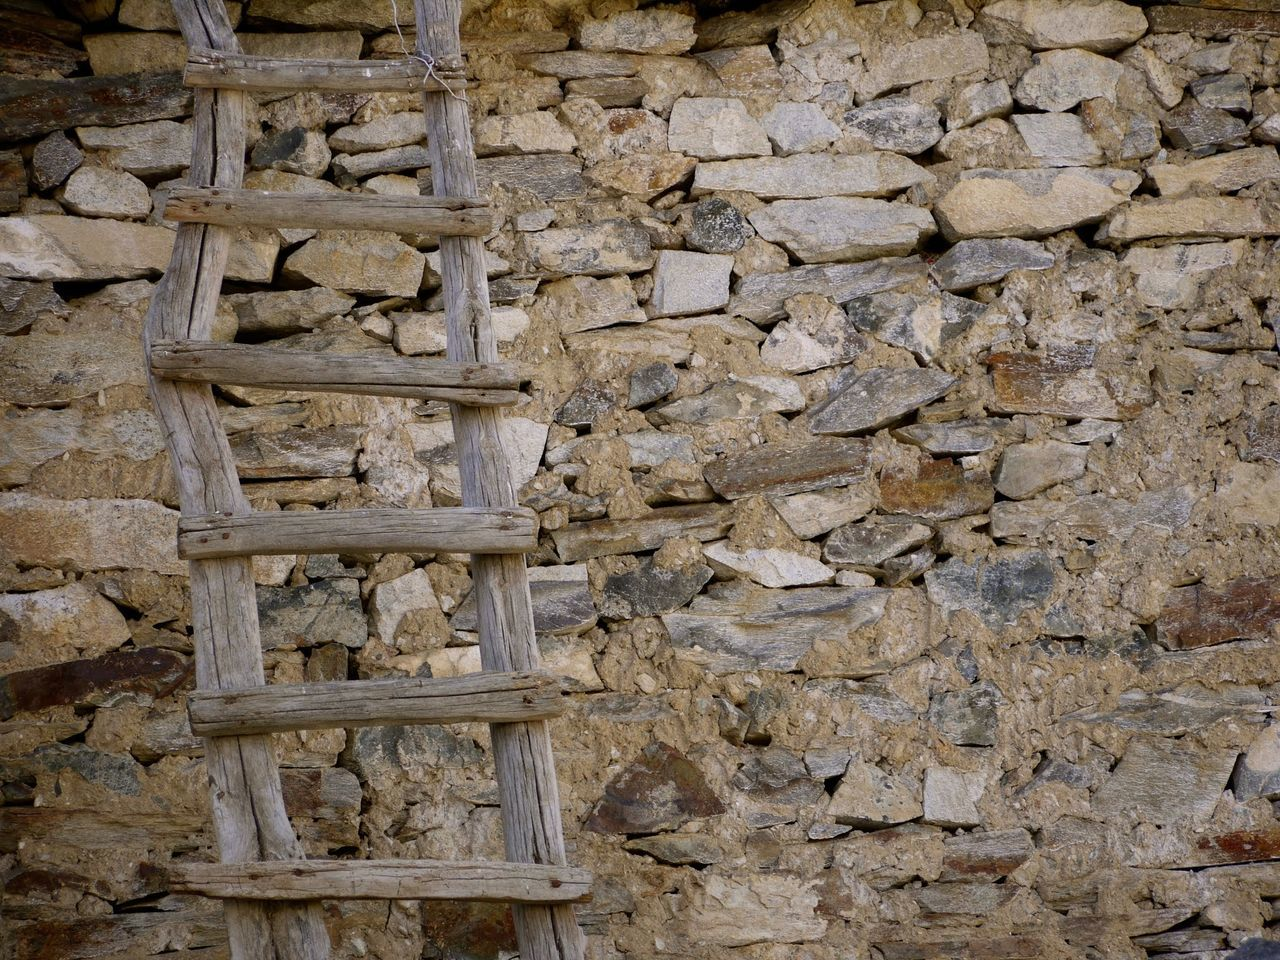 Wooden ladder against stone wall outdoors